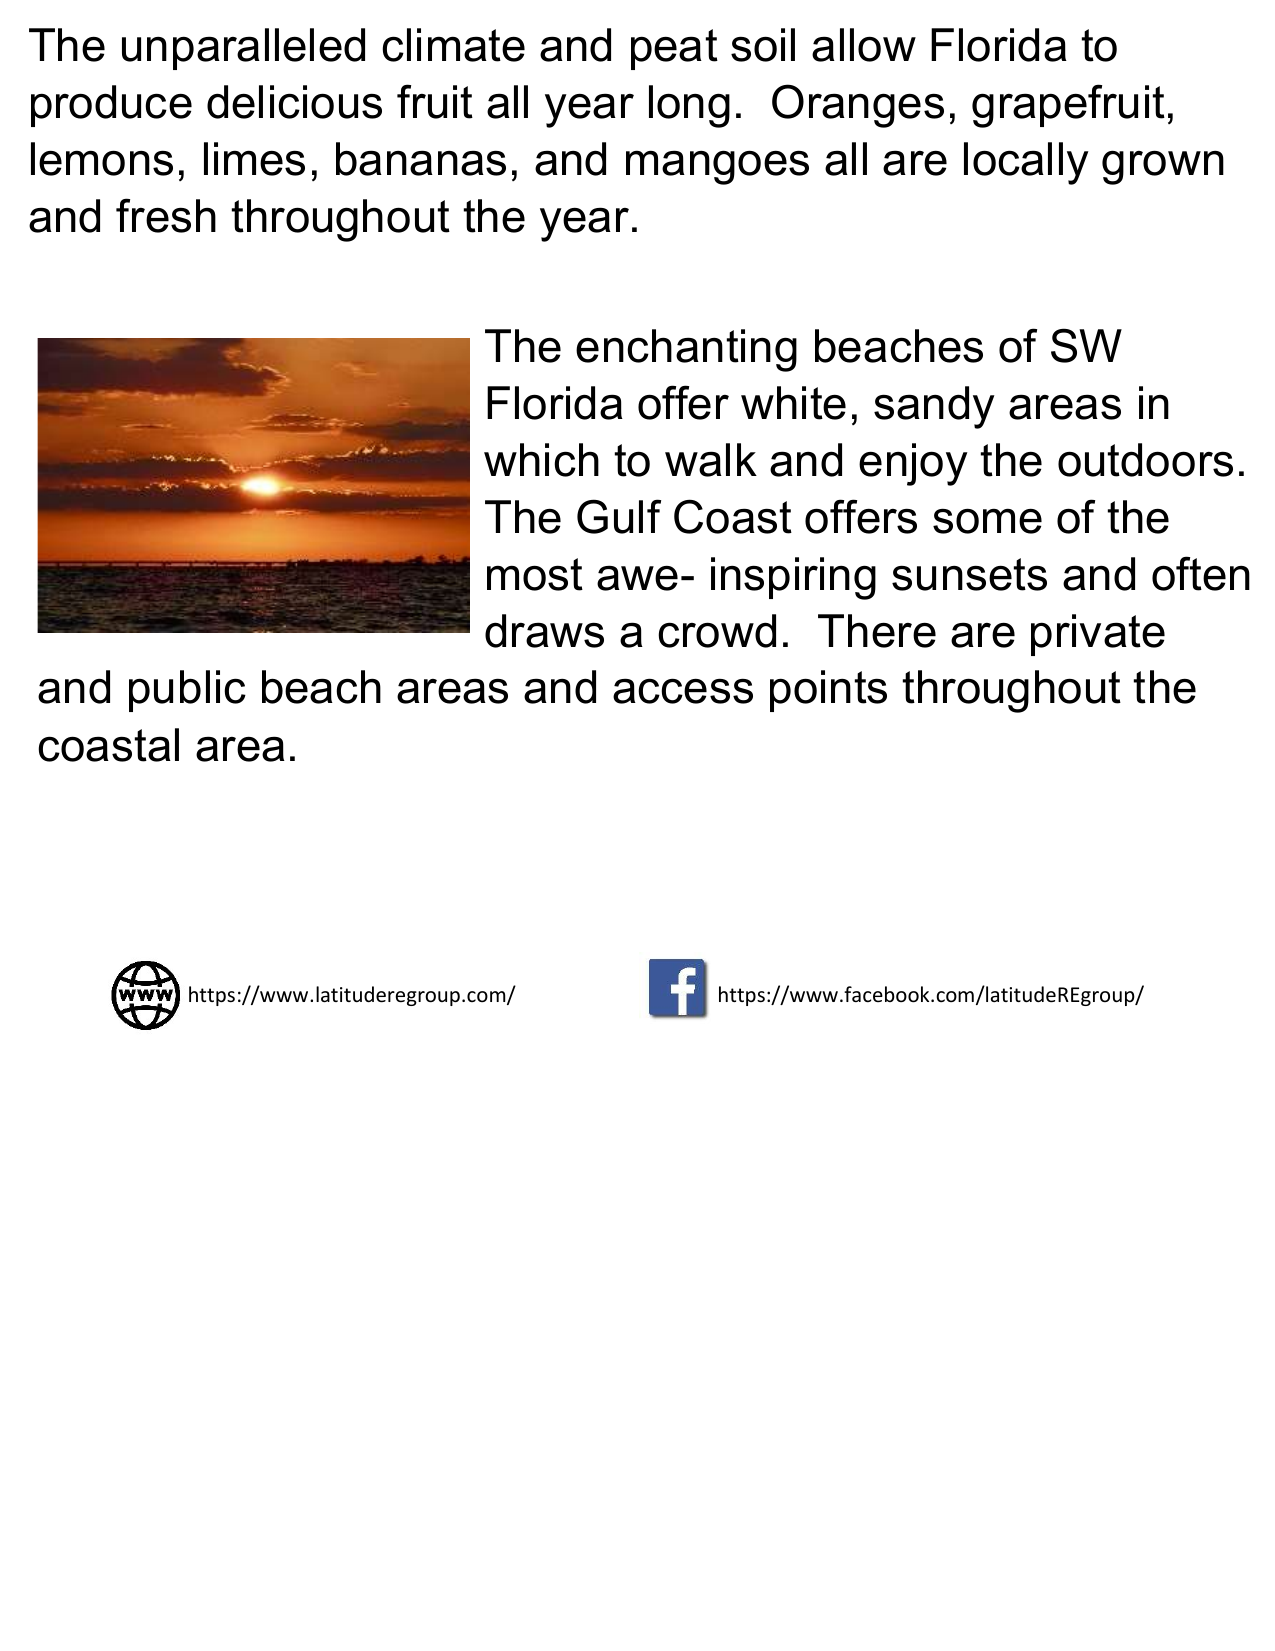 Overview - Southwest Florida PG 2.png